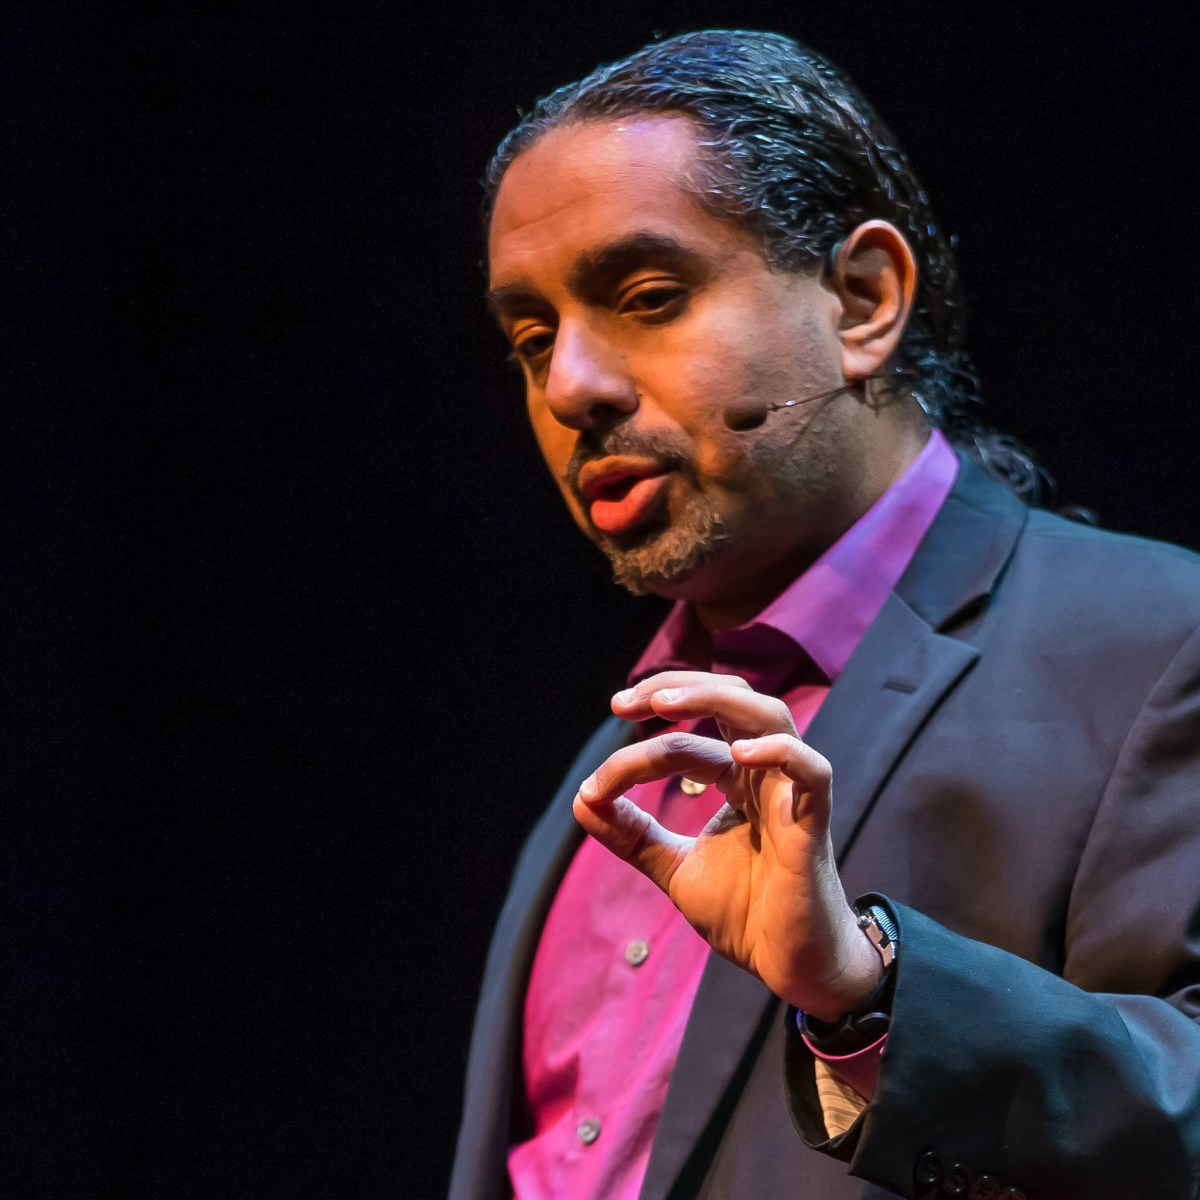 Episode 2.02: Power Tools with Ramez Naam